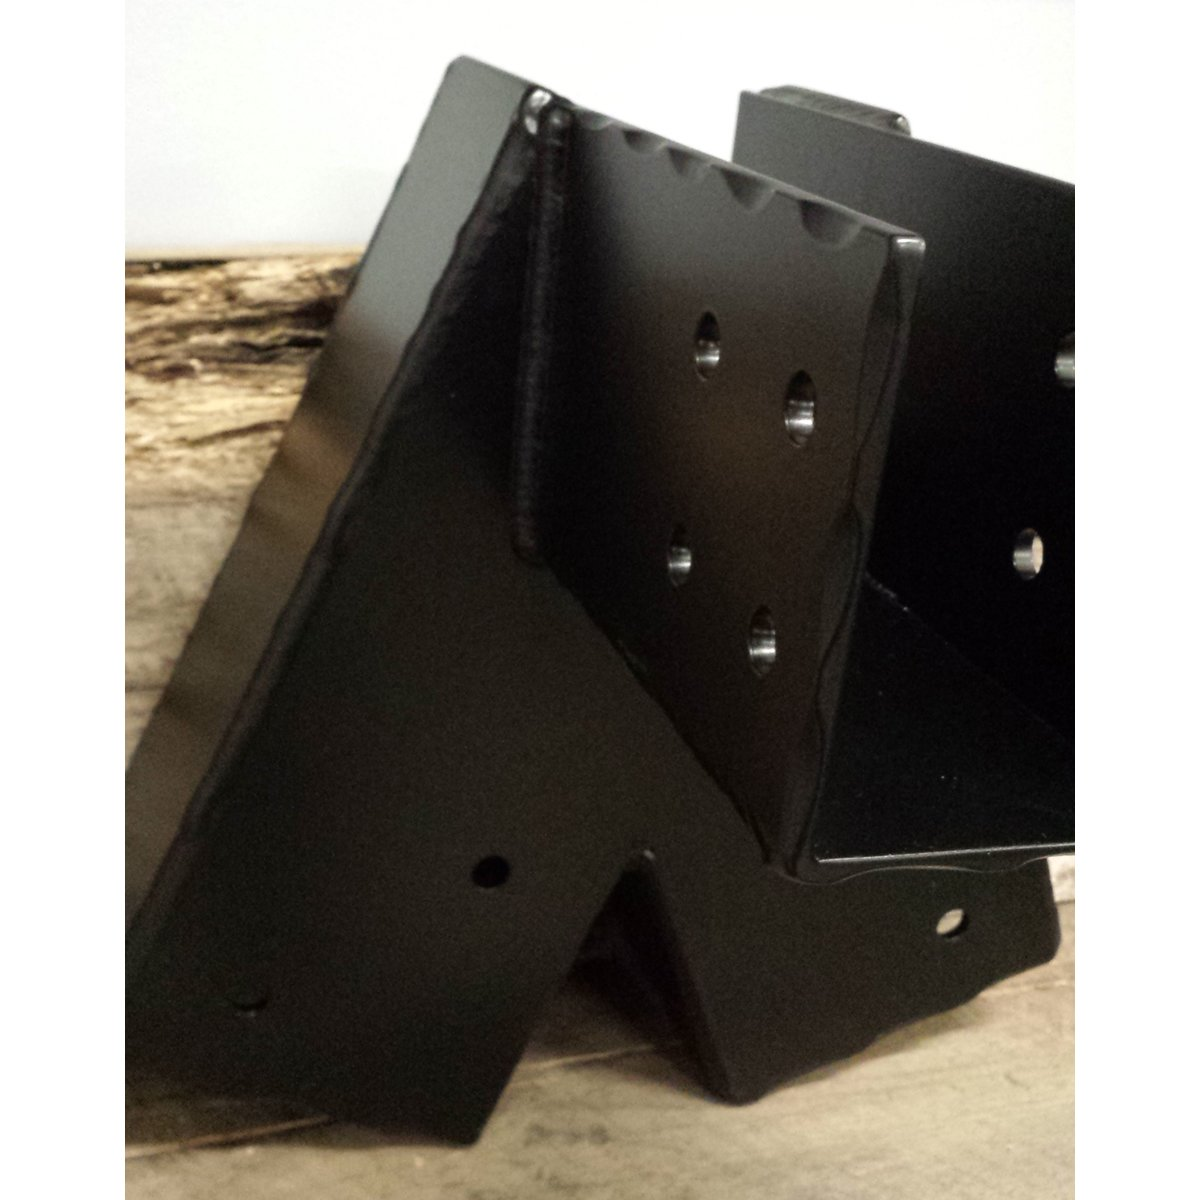 Custom Steel Swing Set Brackets Hammered and Powder Coated Black